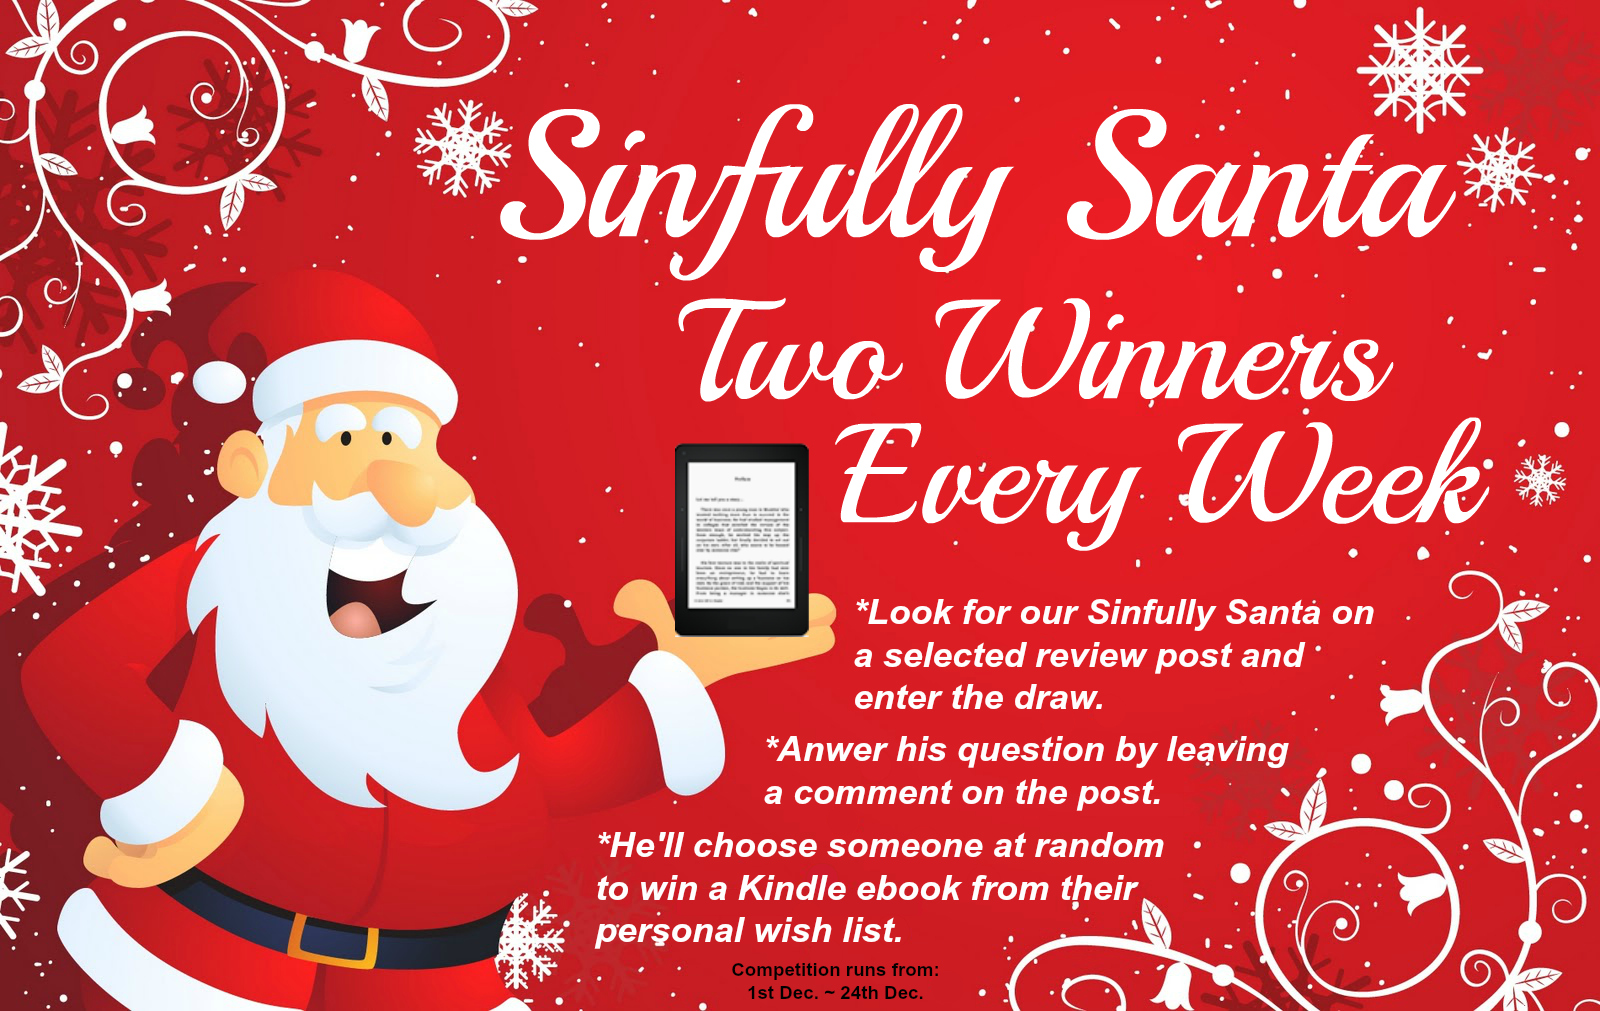 SINFULLY SANTA IS BACK!